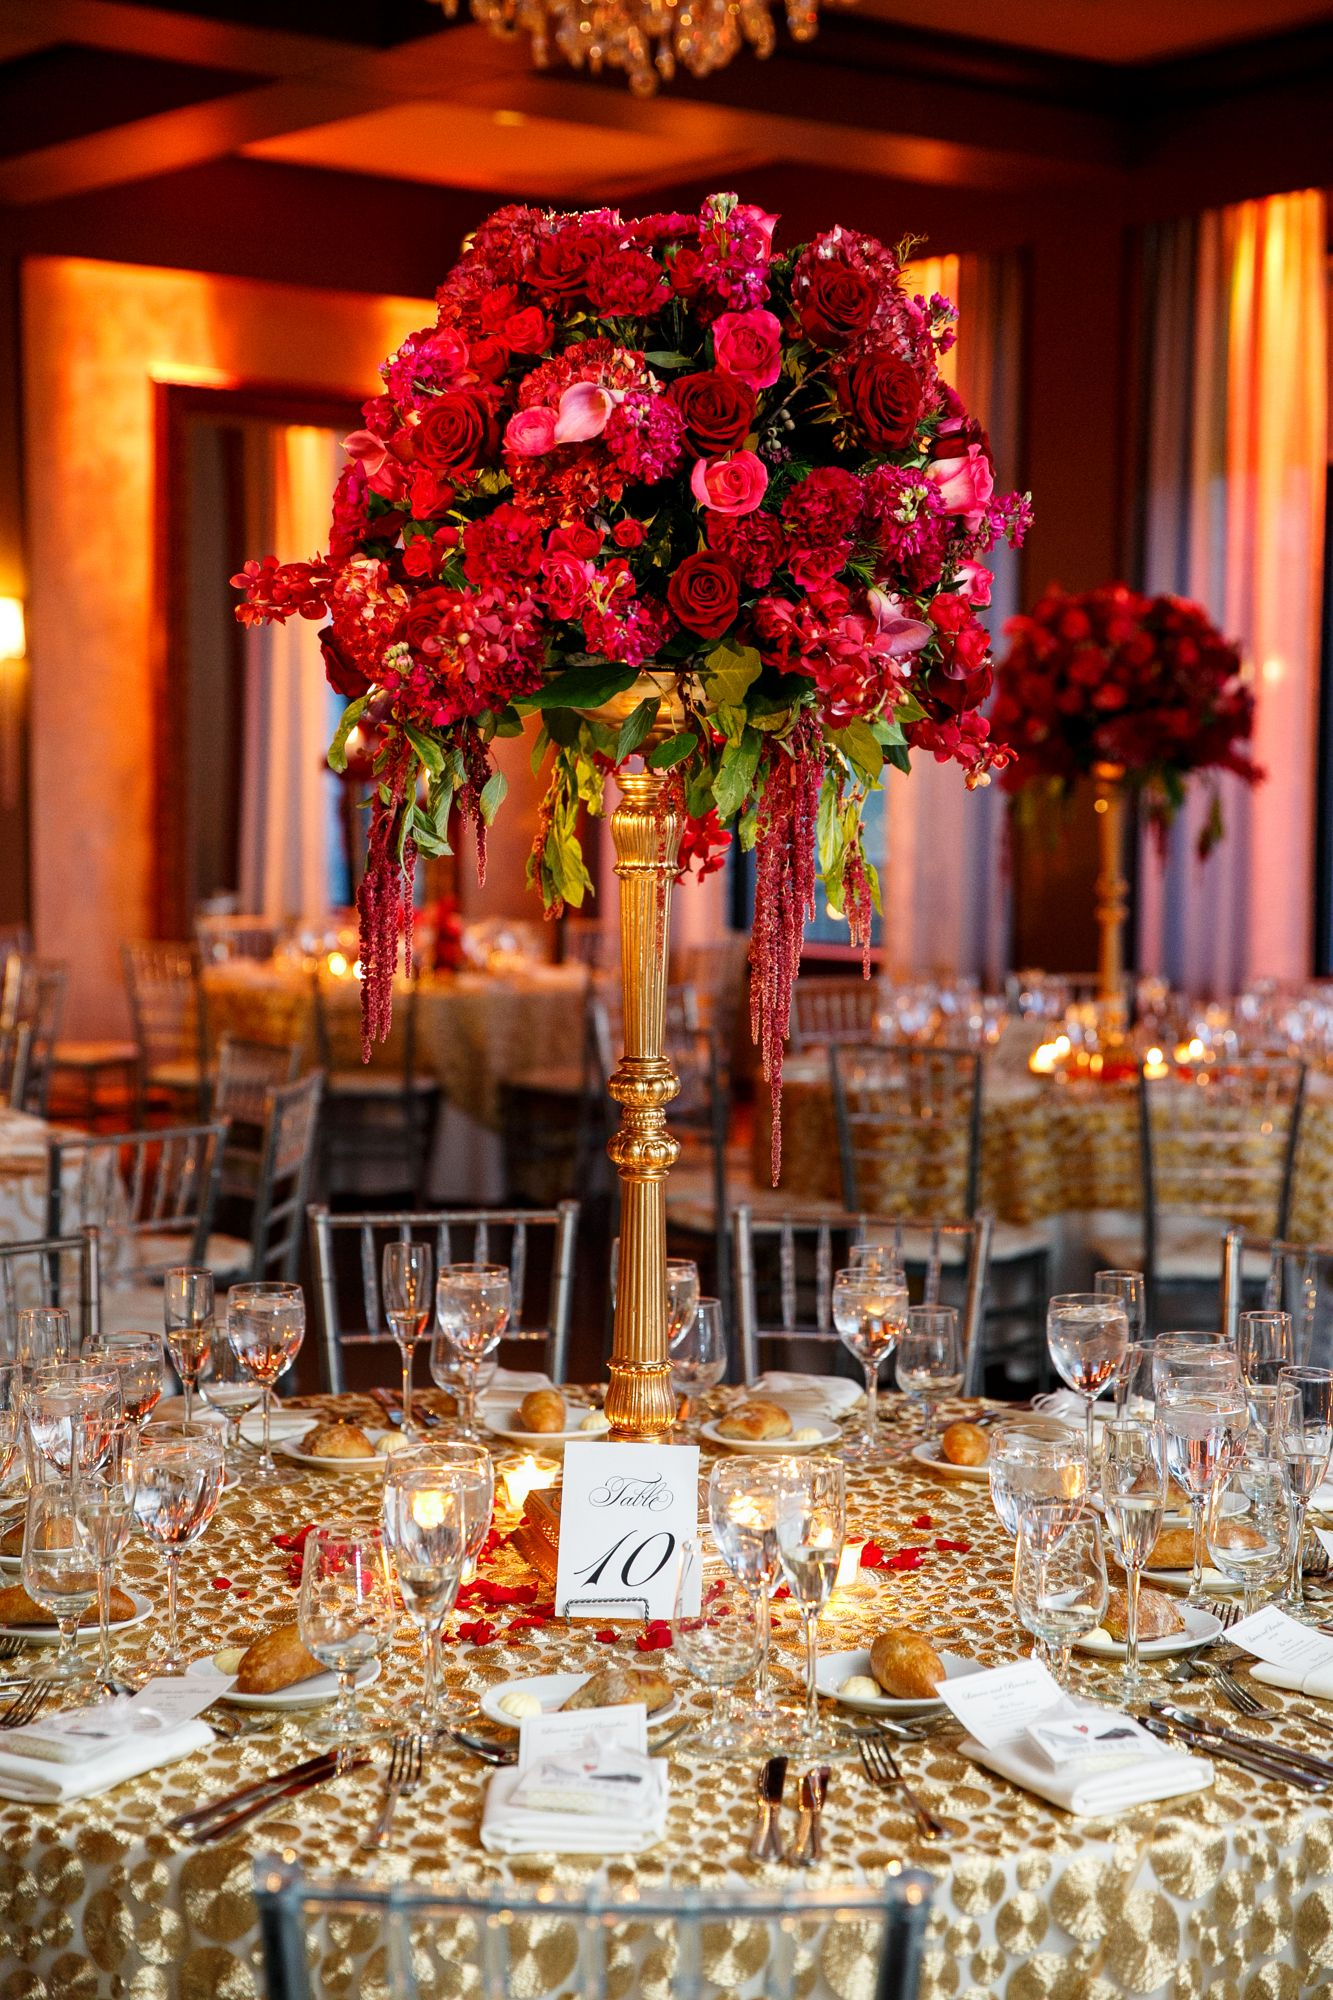 Elaborate red rose centerpiece on gold stand wedding